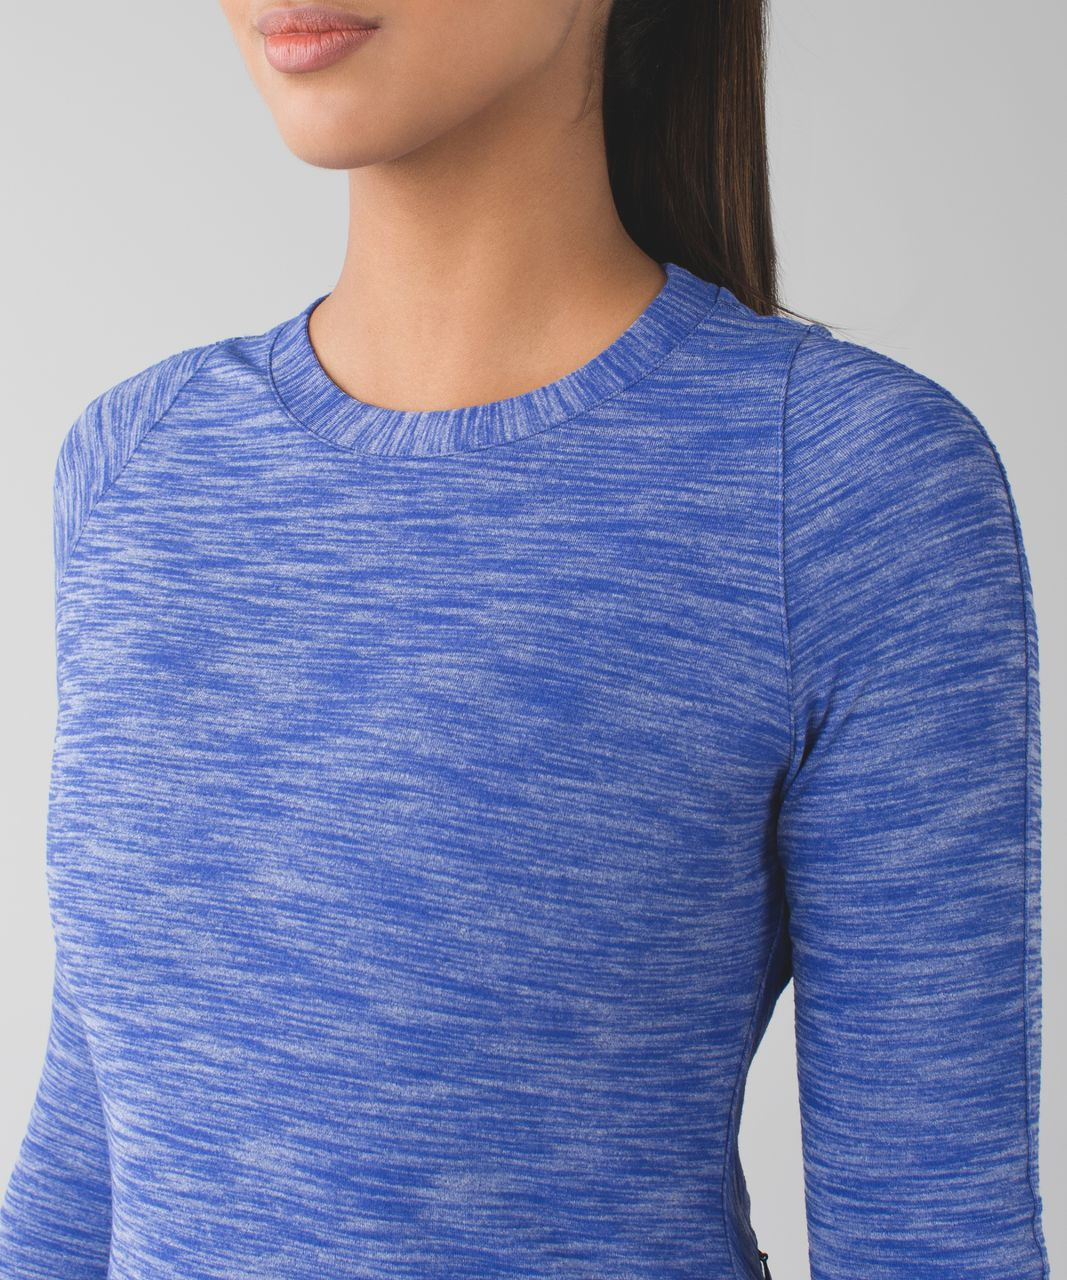 Lululemon &go Where-To Dress *Long Sleeve - Heathered Sapphire Blue